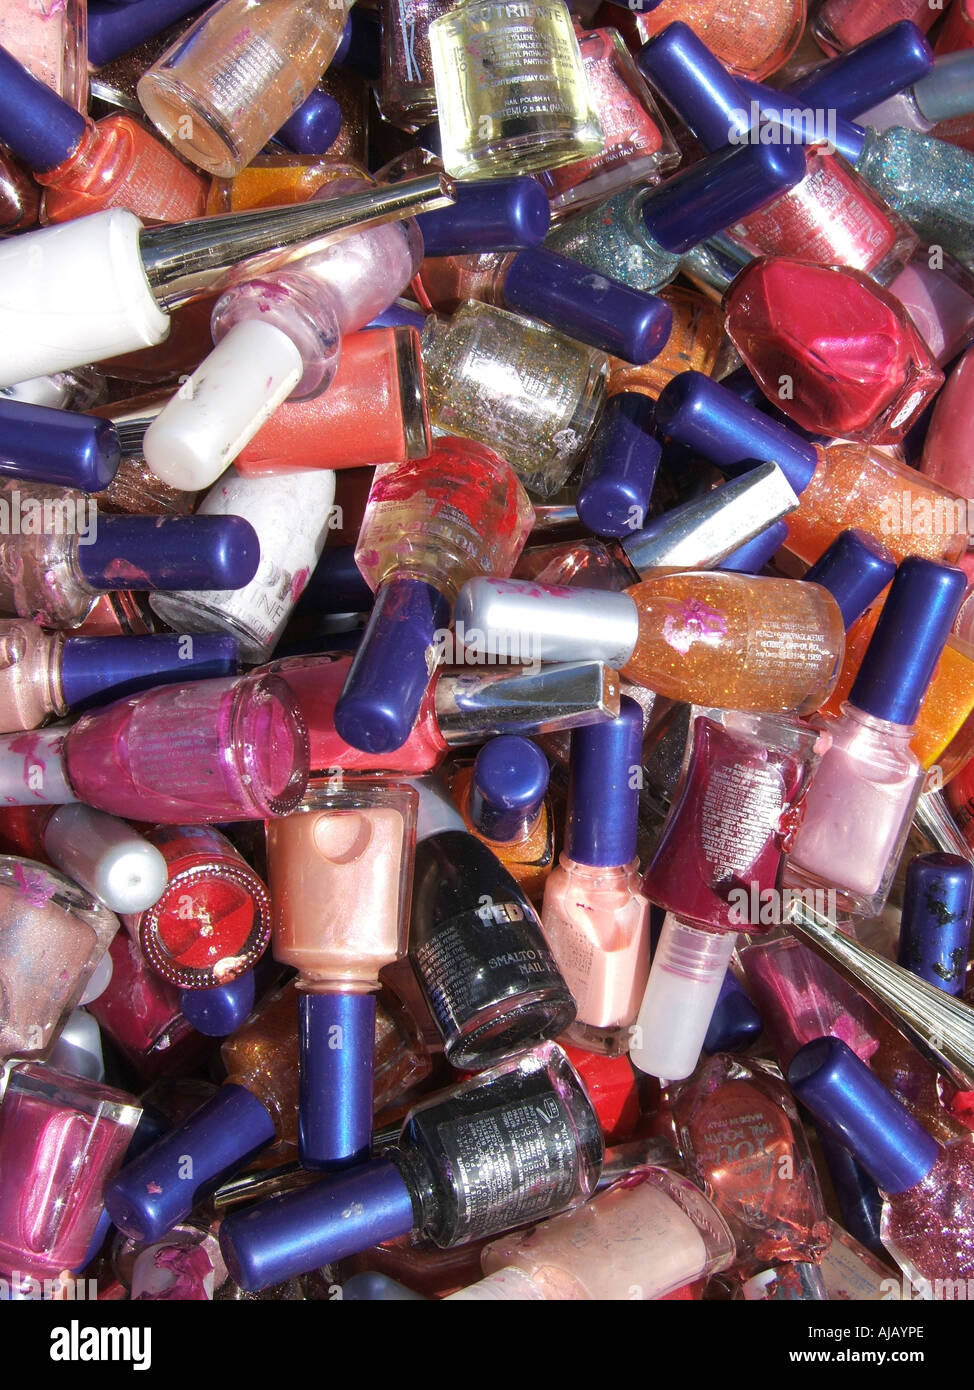 lots of nail varnish bottles on market stall Stock Photo: 8388269 ...